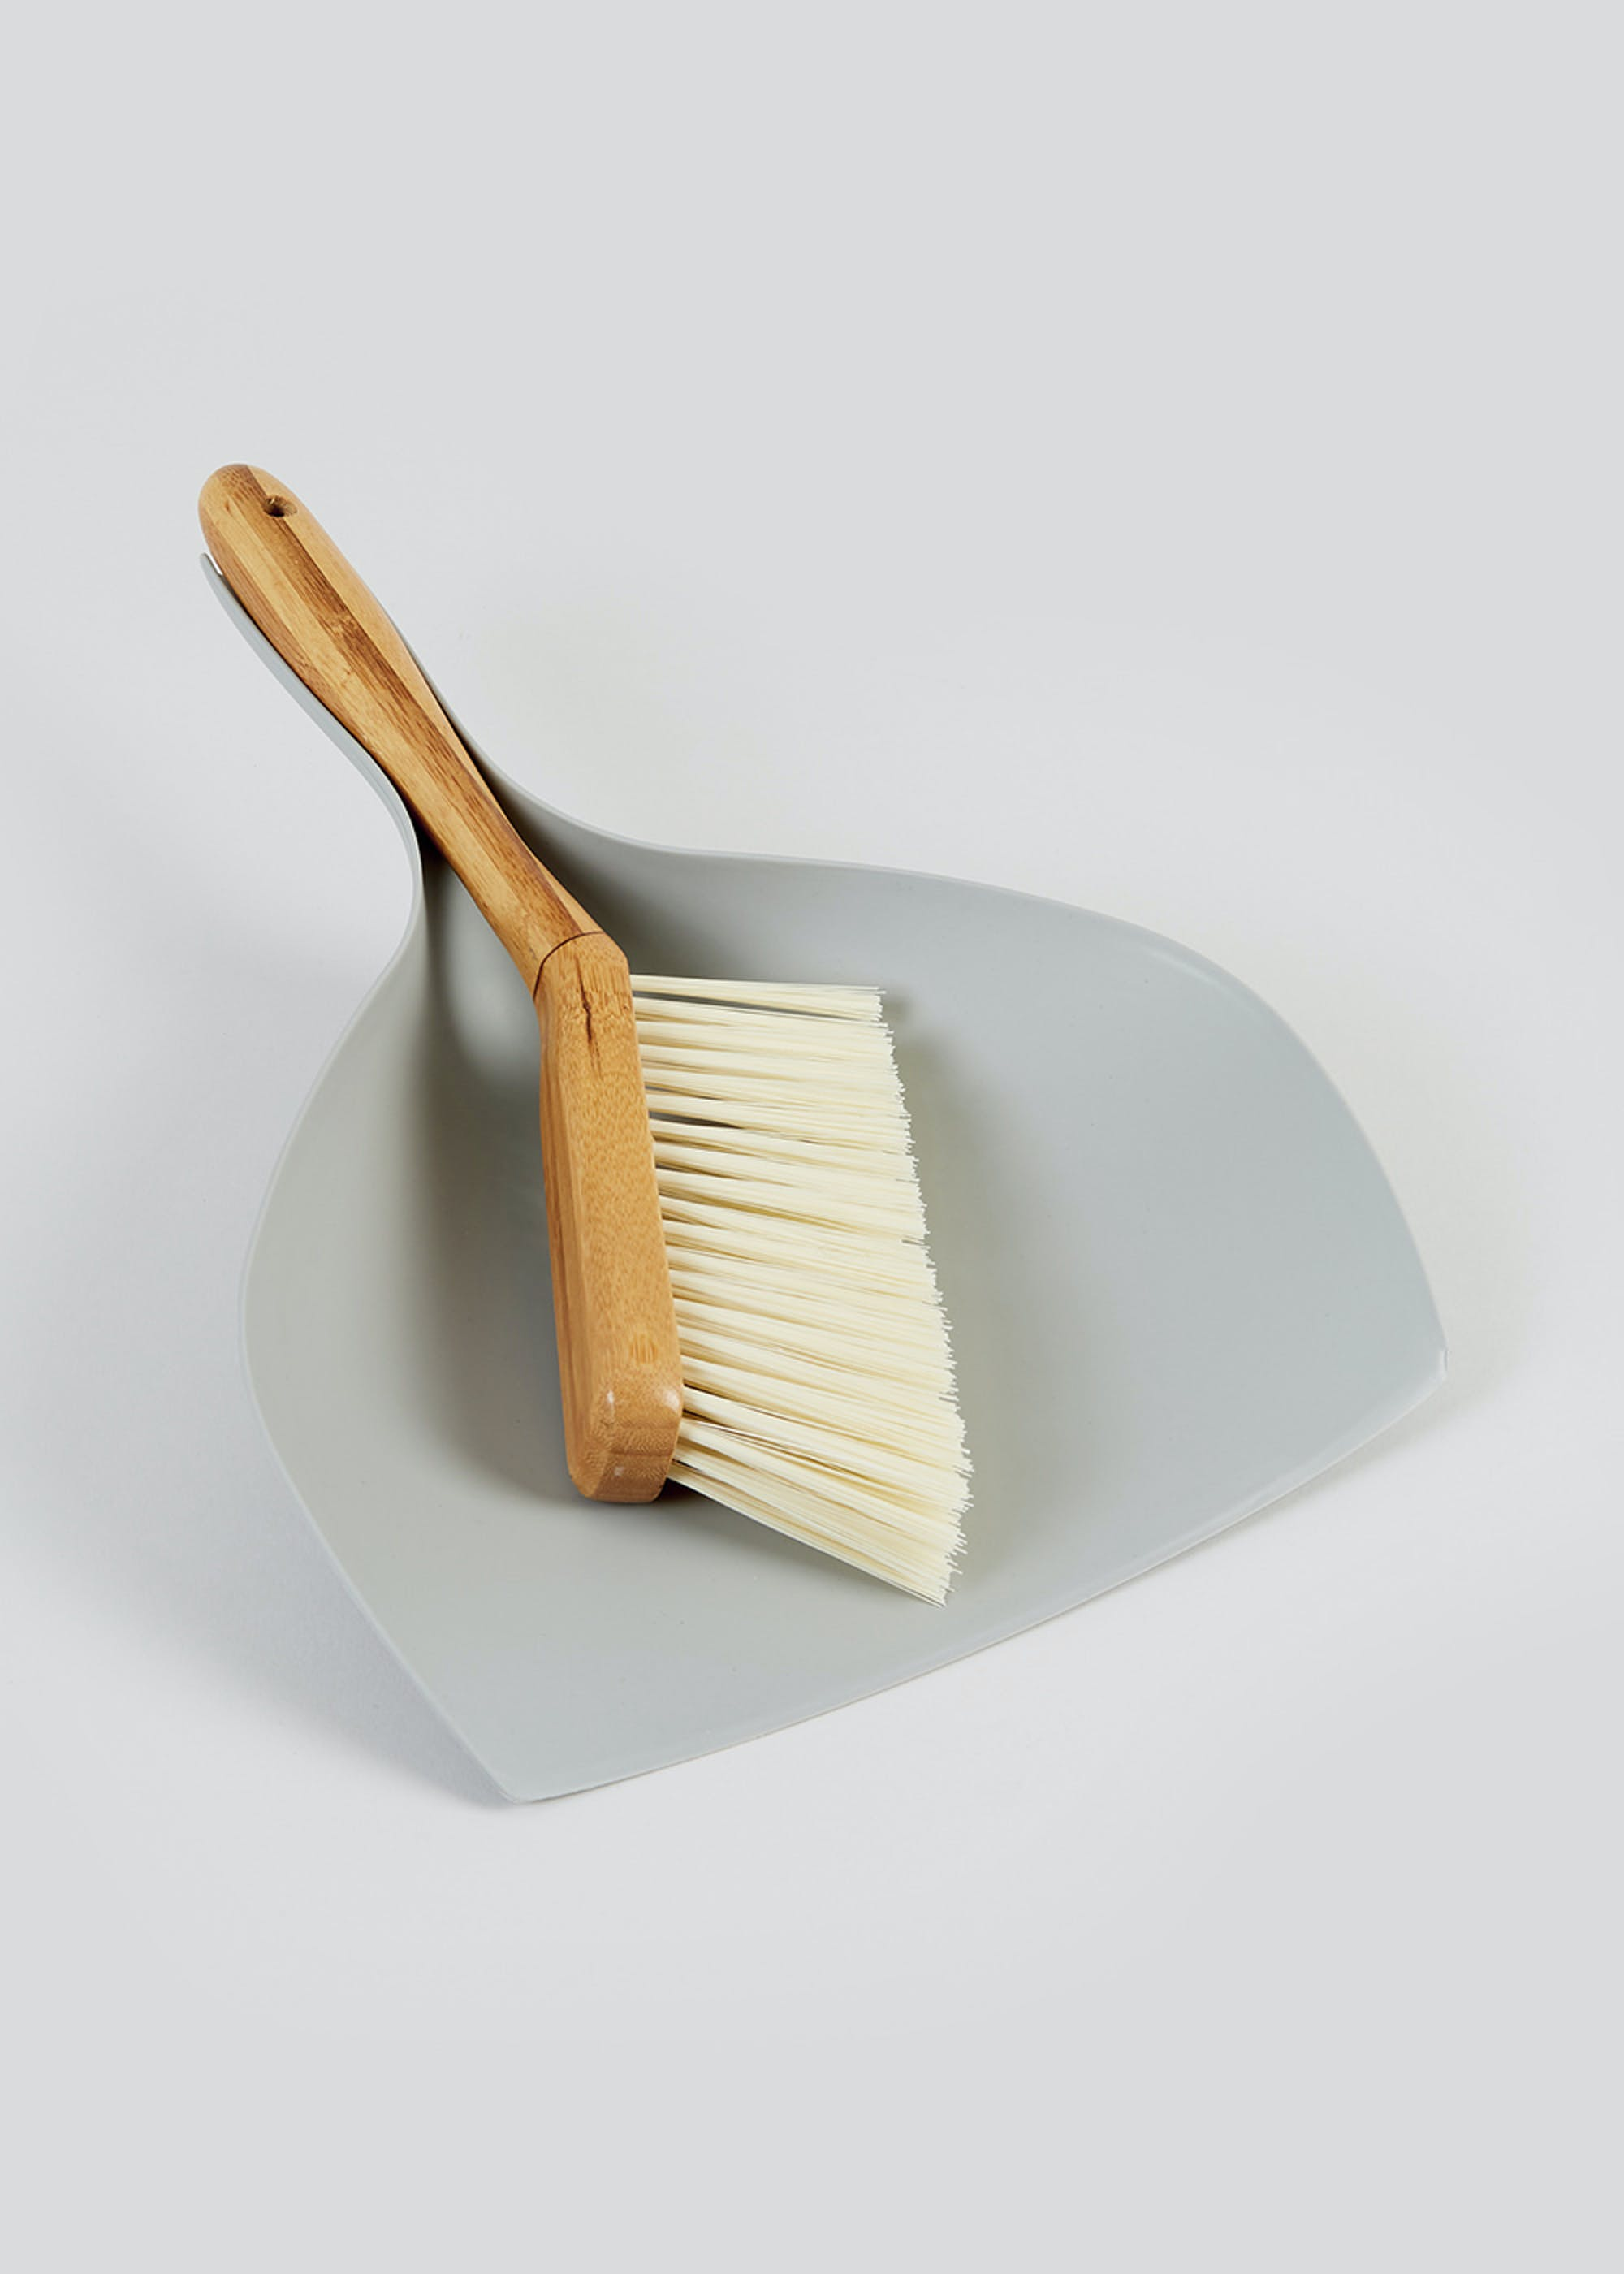 Why spend £7 on this wooden dustpan and brush set from Matalan...